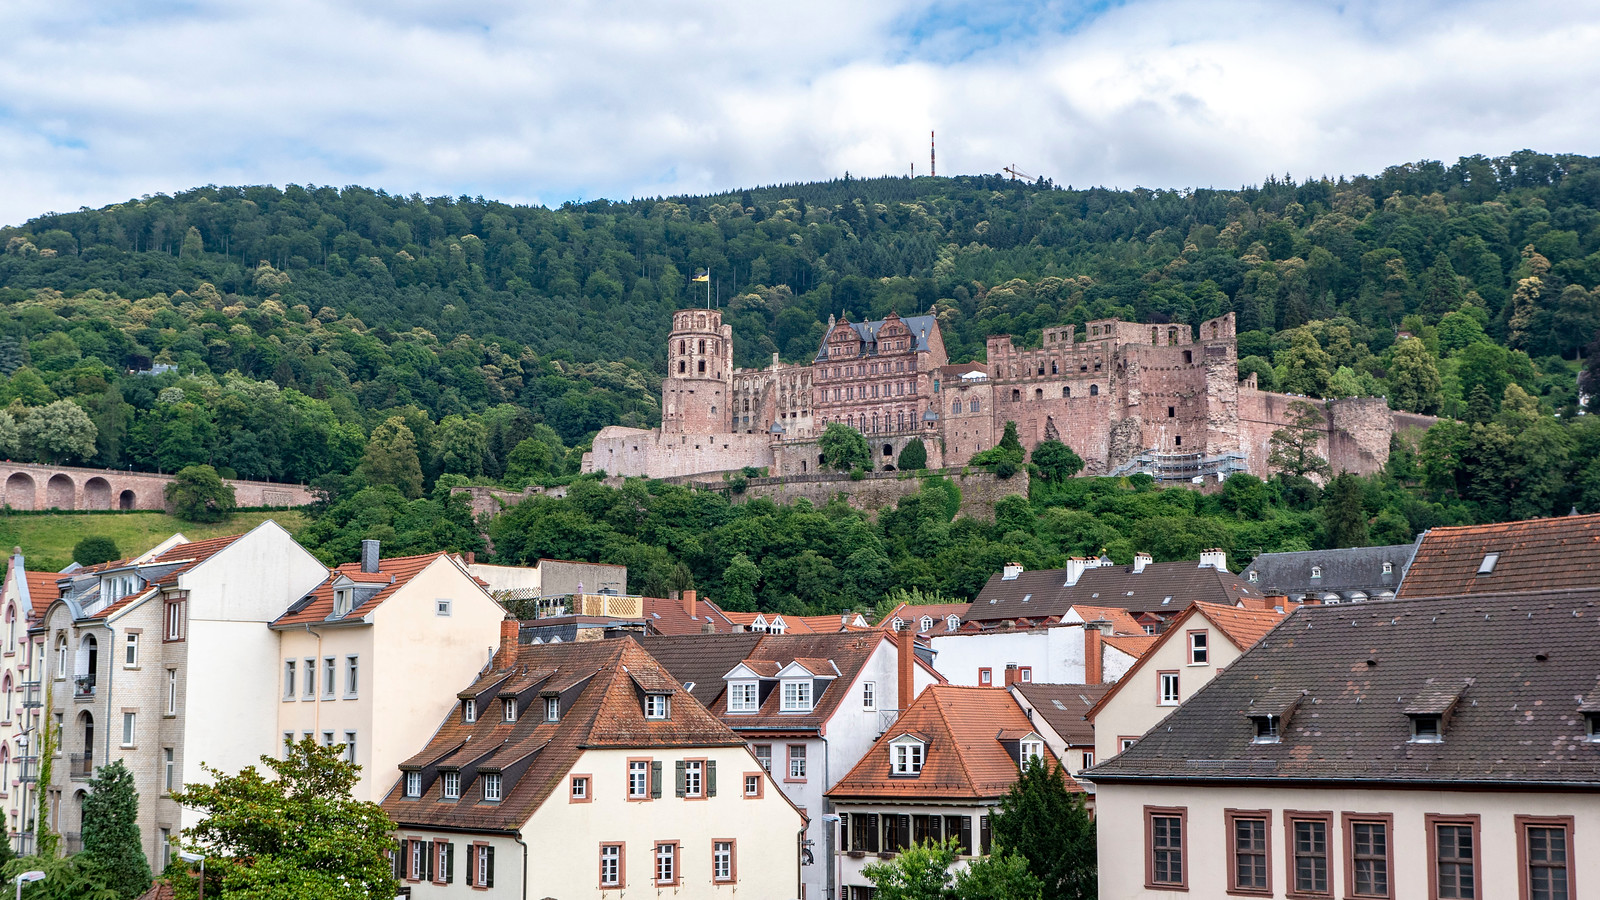 Spectacular Things to Do in Heidelberg Germany - Heidelberg Castle